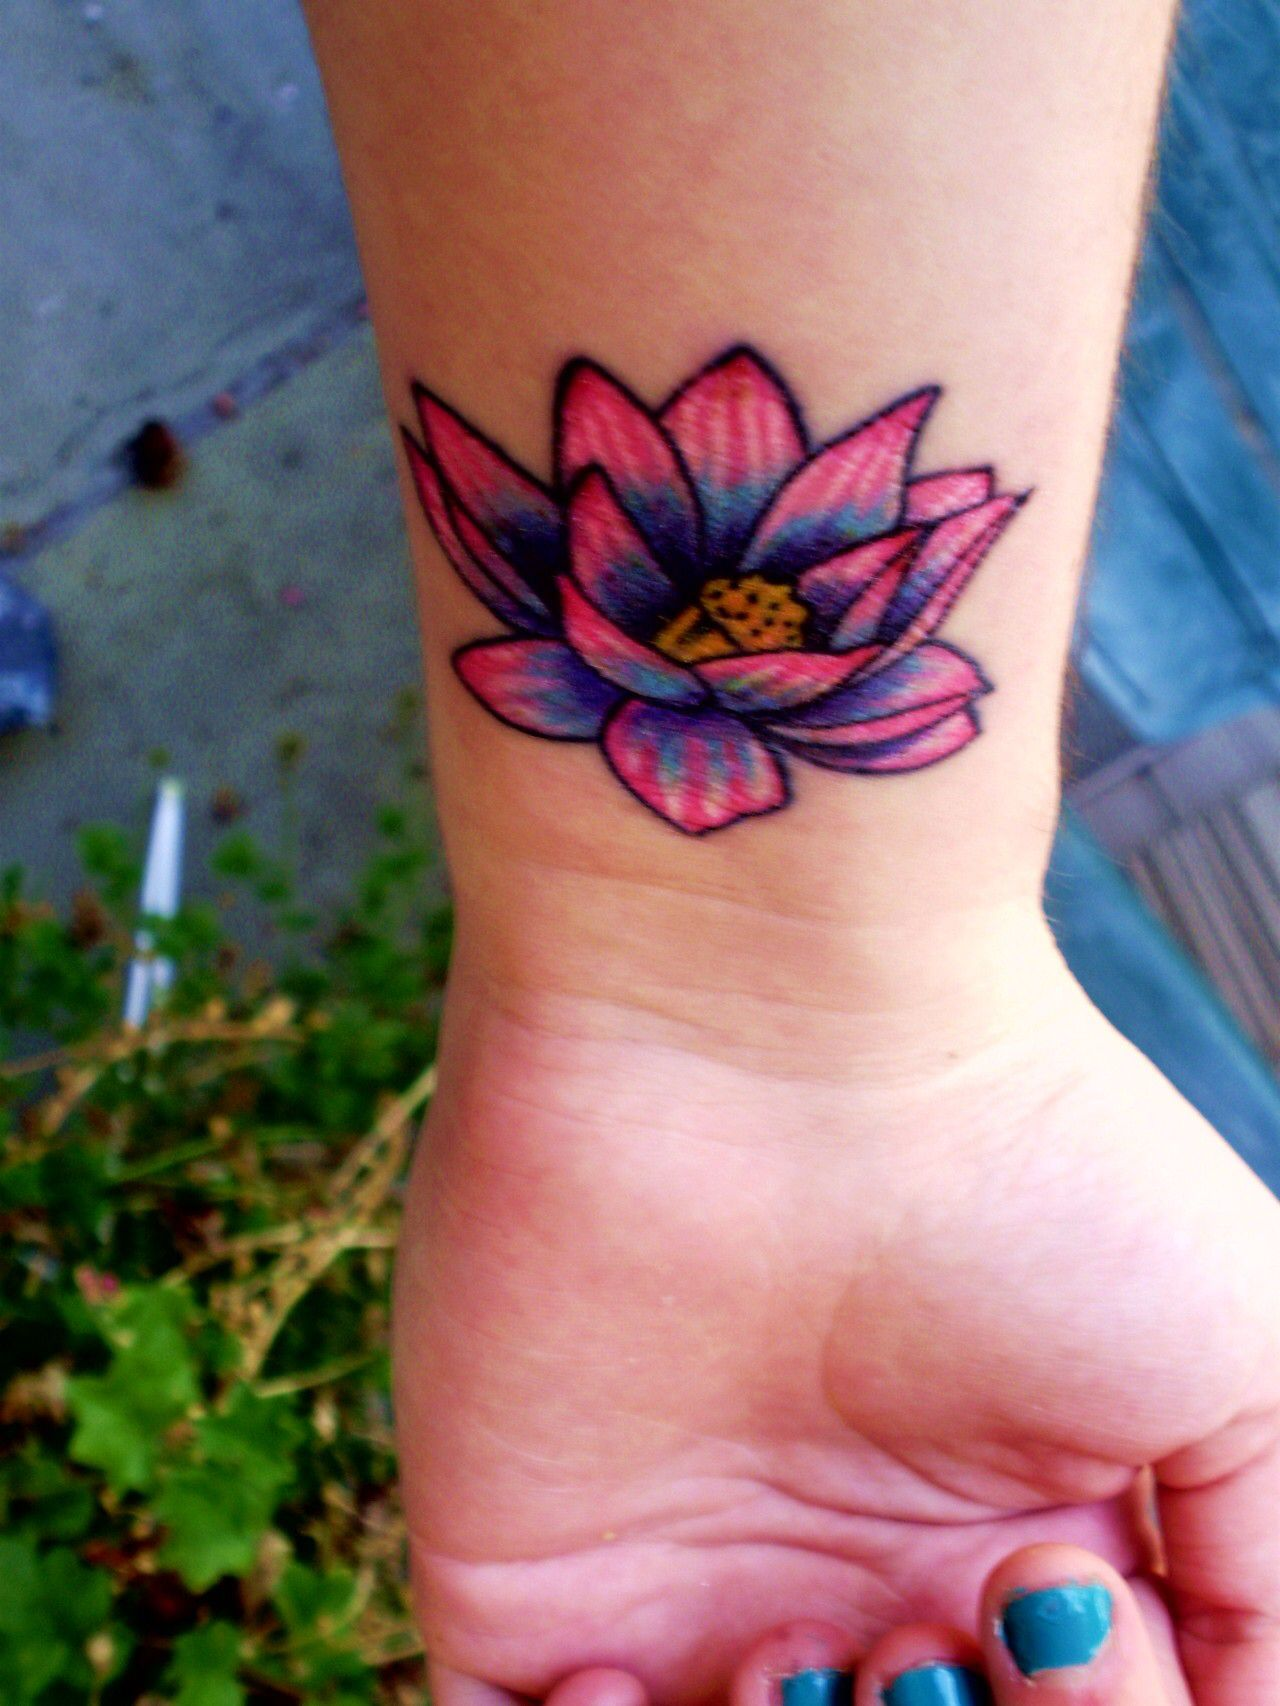 Lotus flower tattoo symbolizing strength of overcoming struggle lotus flower tattoo symbolizing strength of overcoming struggle symbolizing new beginnings buycottarizona Gallery